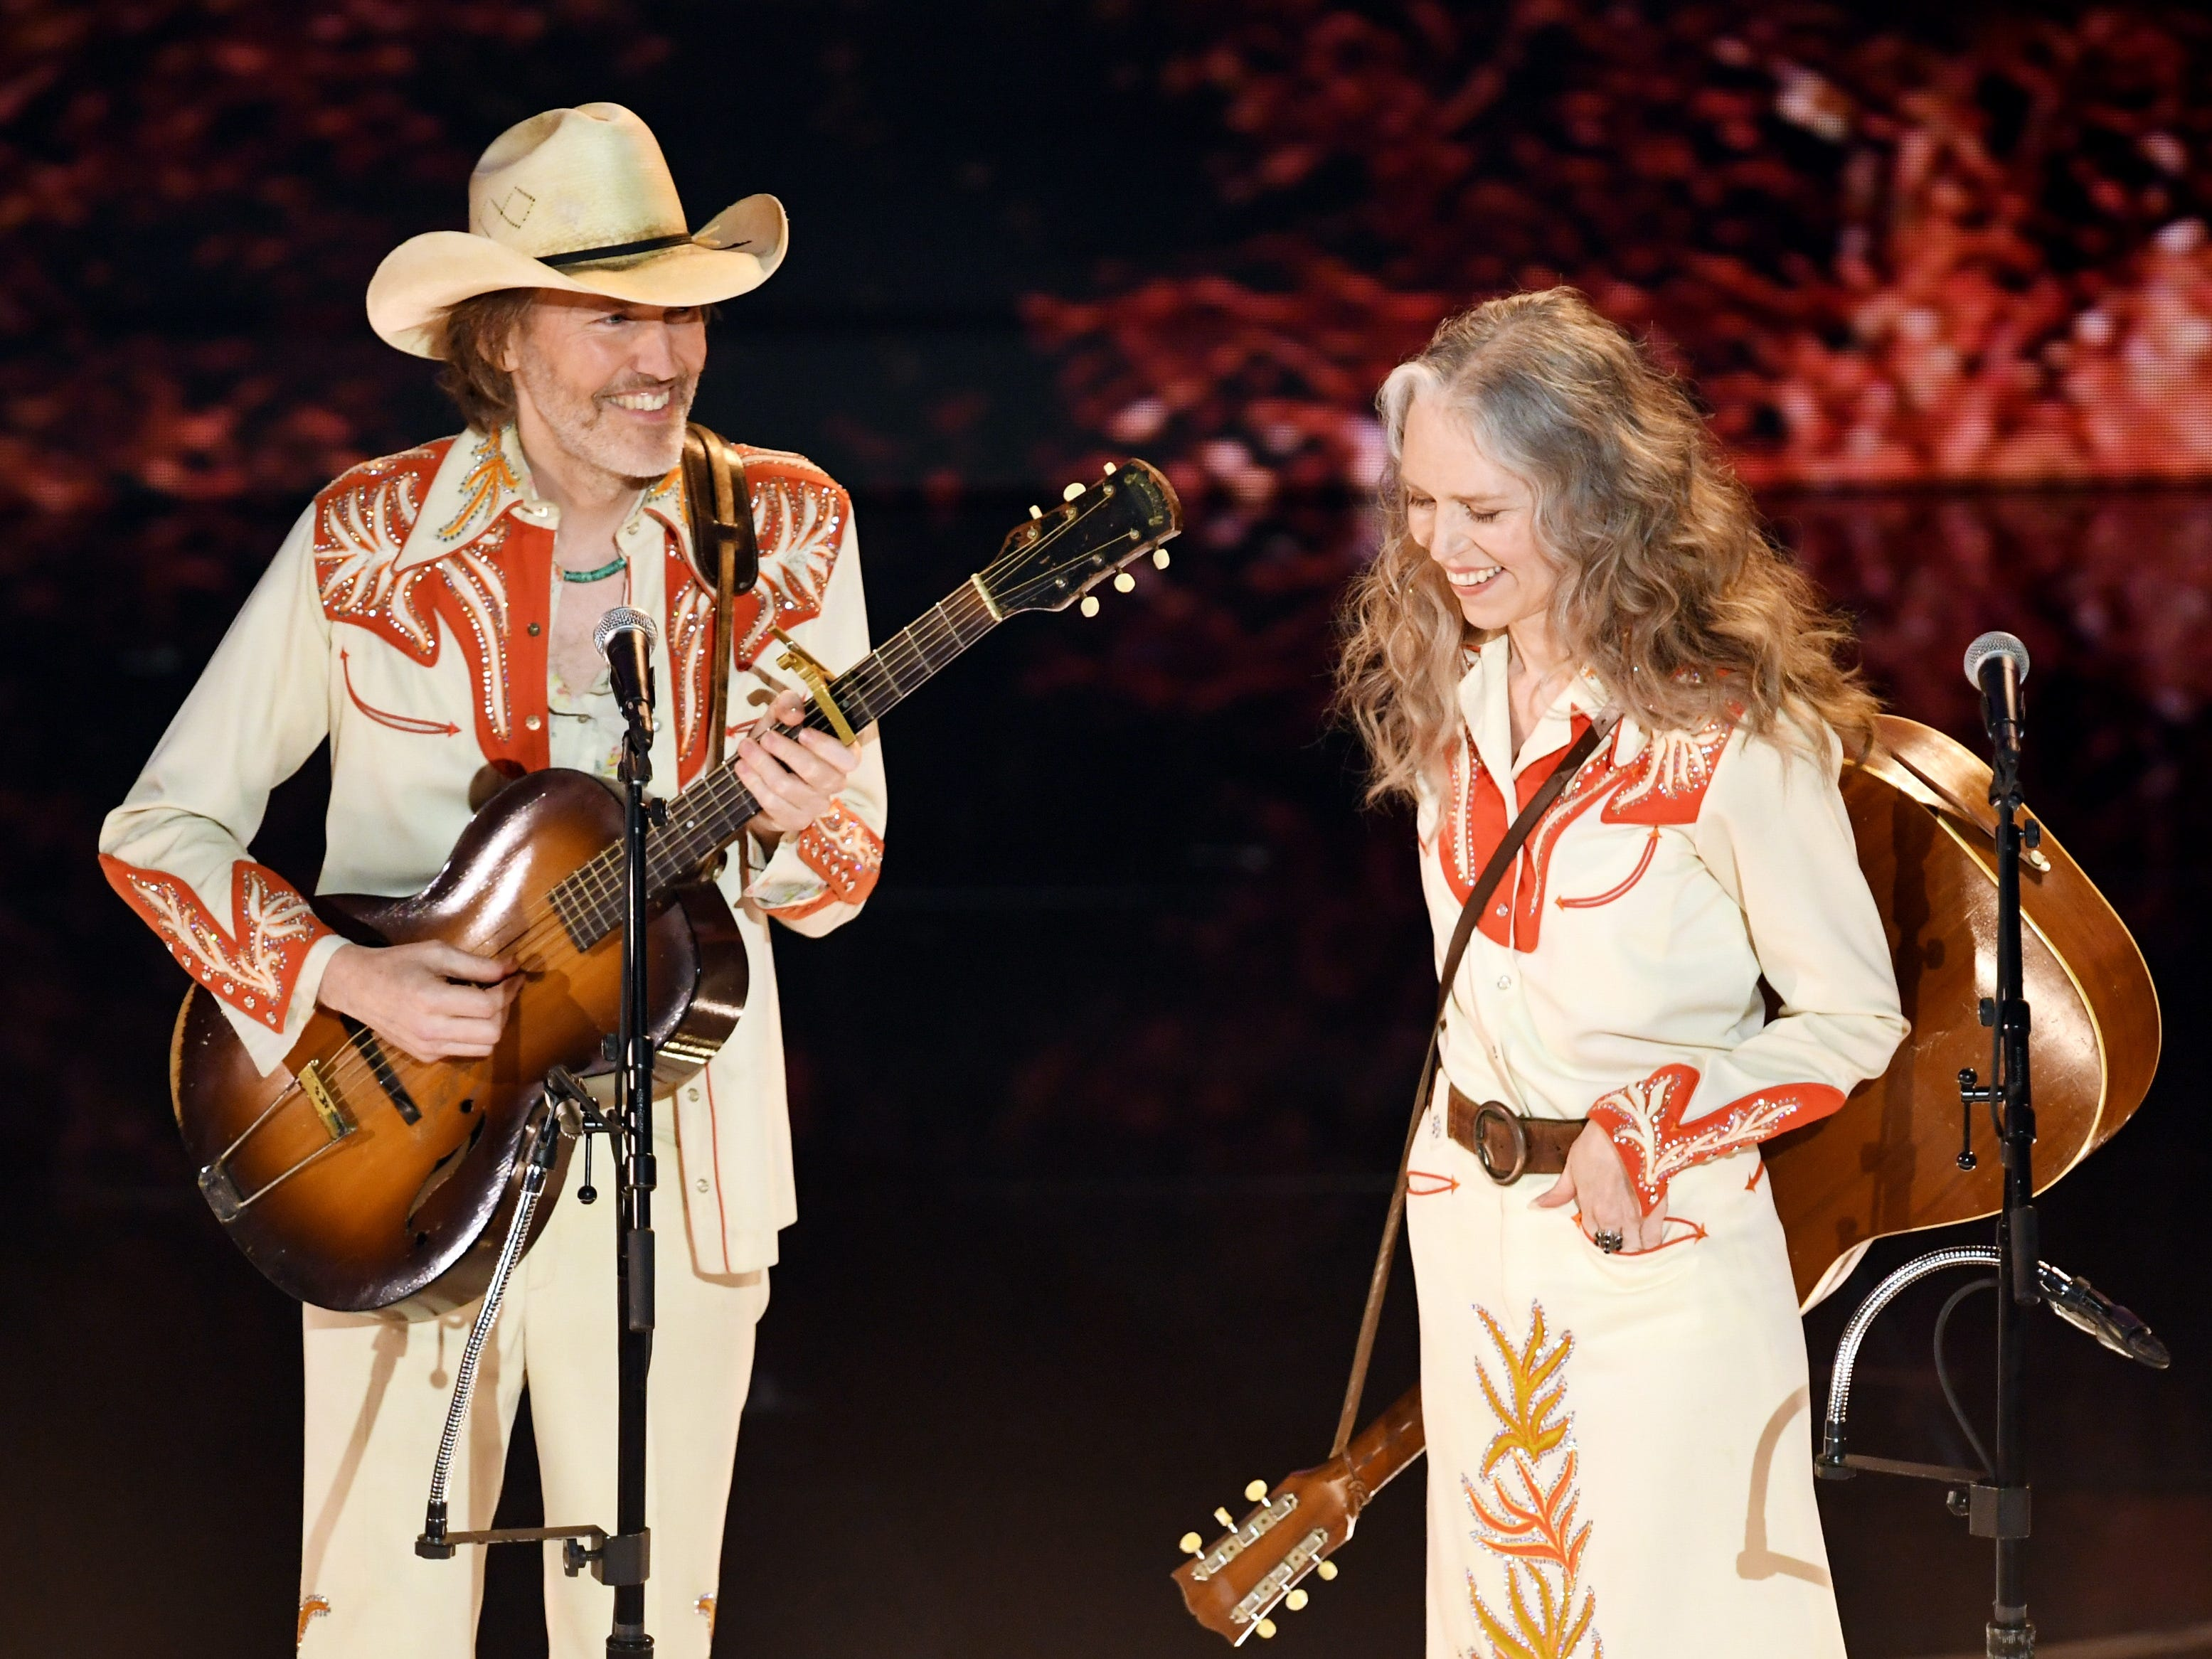 David Rawlings and Gillian Welch perform onstage during the 91st Annual Academy Awards.